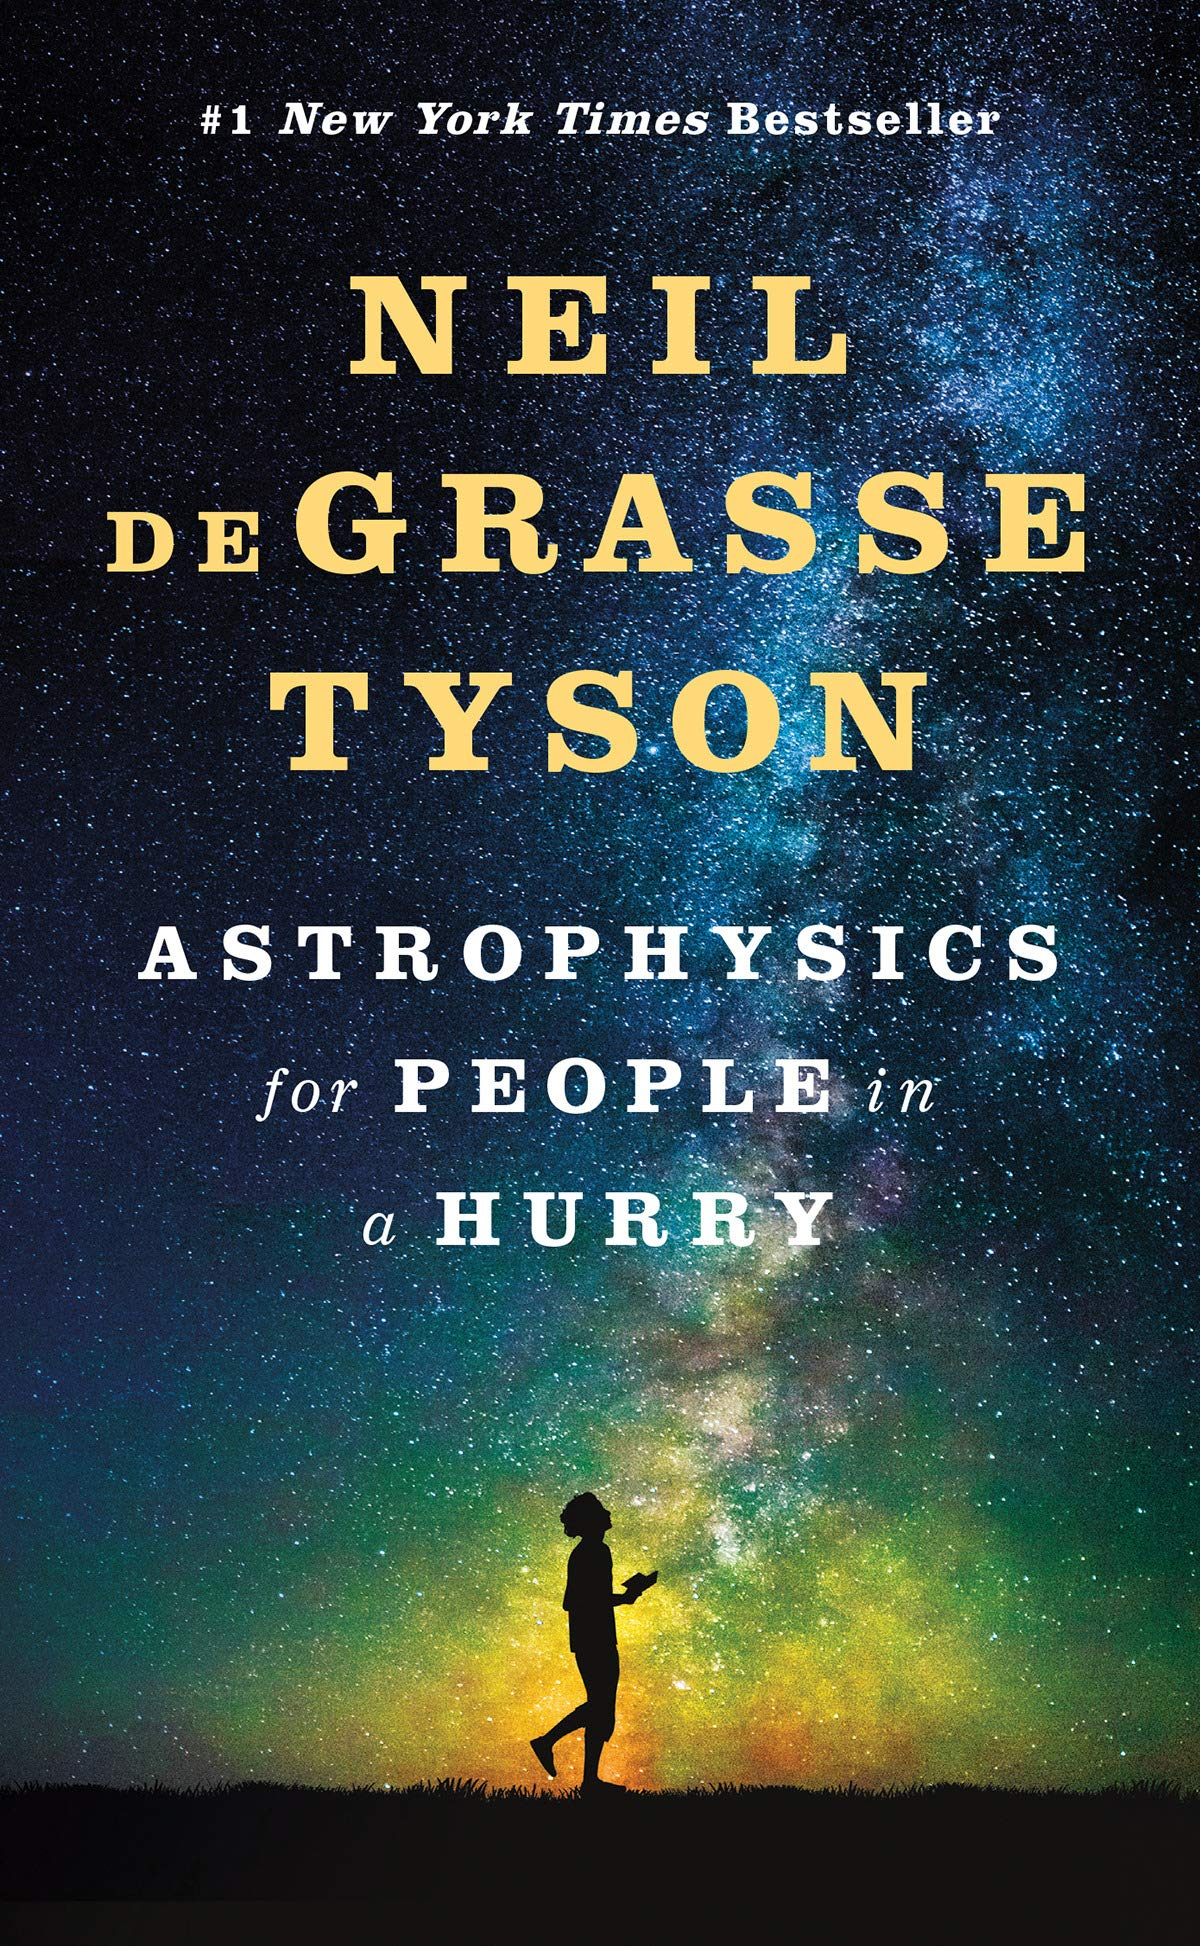 Astrophysics for people in a hurry / Neil deGrasse Tyson